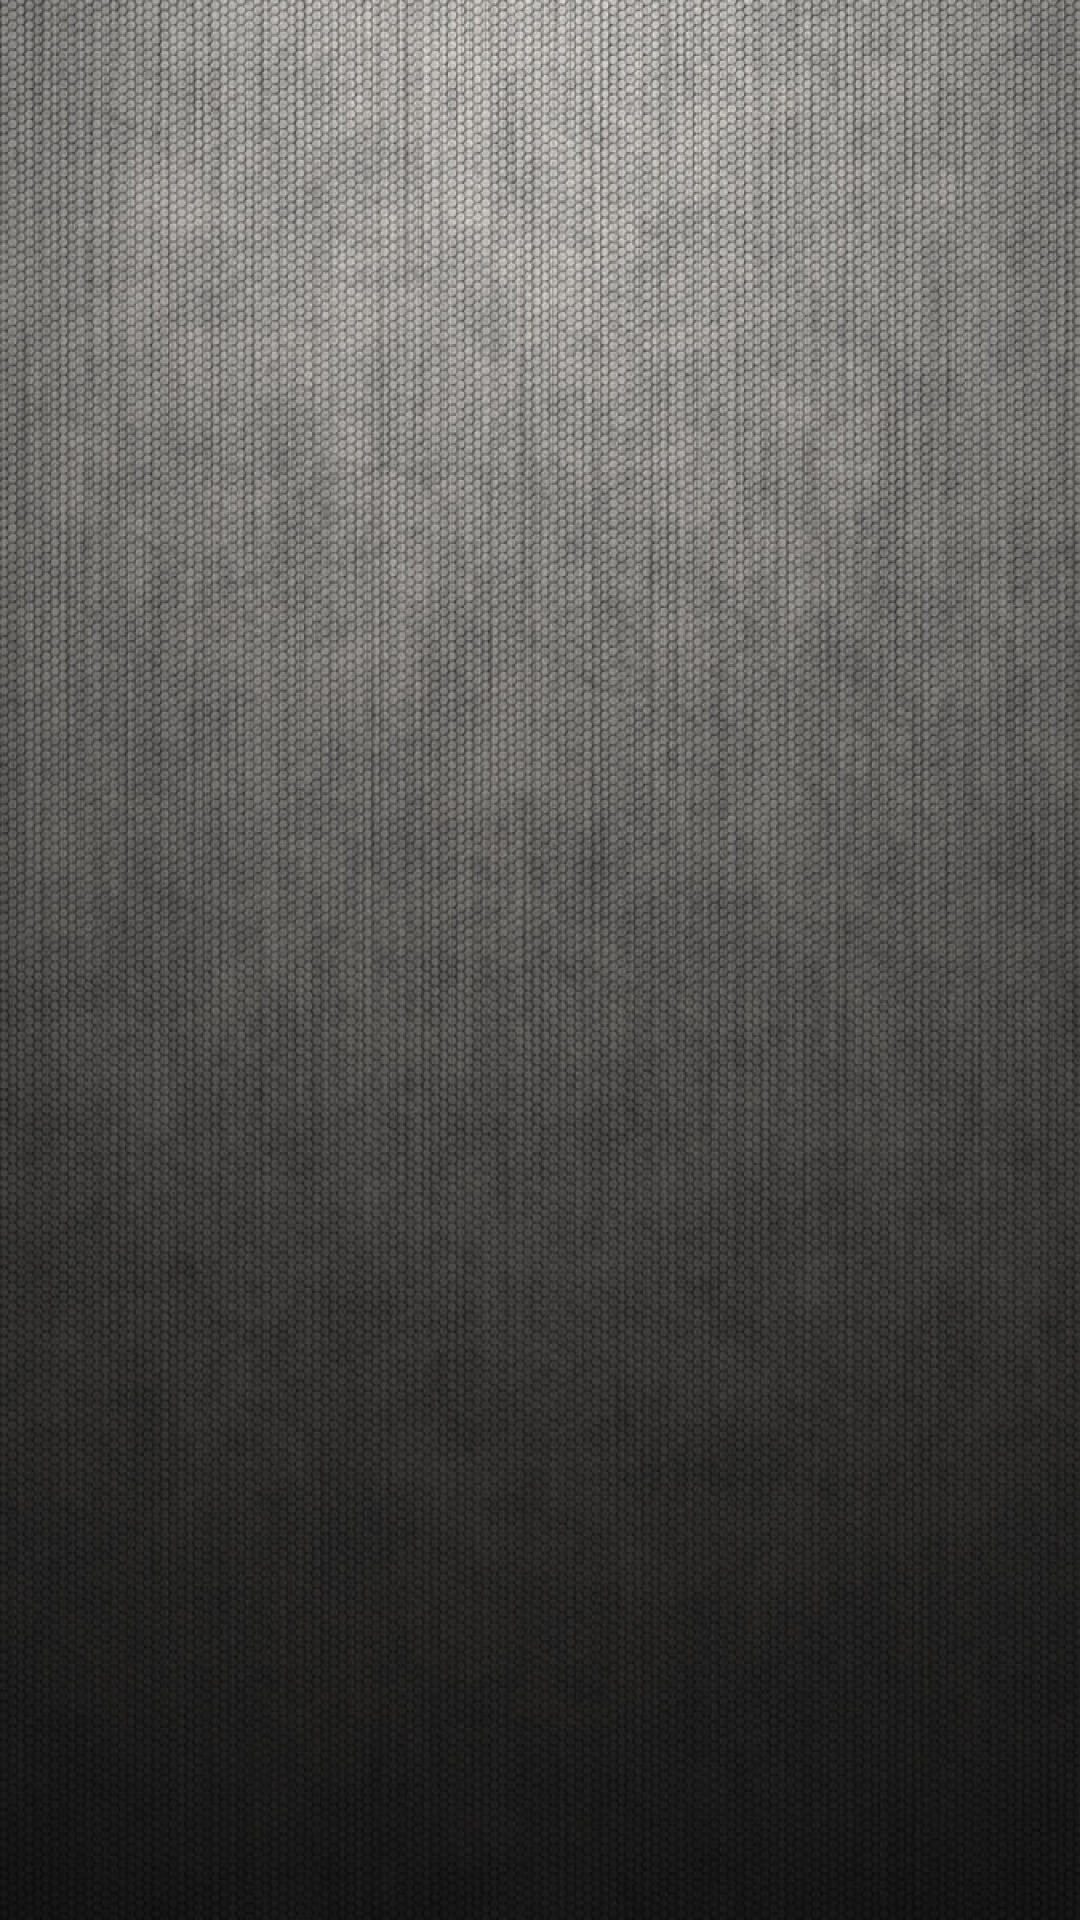 Loading Wallpaper Red Line Grey Background Android Wallpaper free